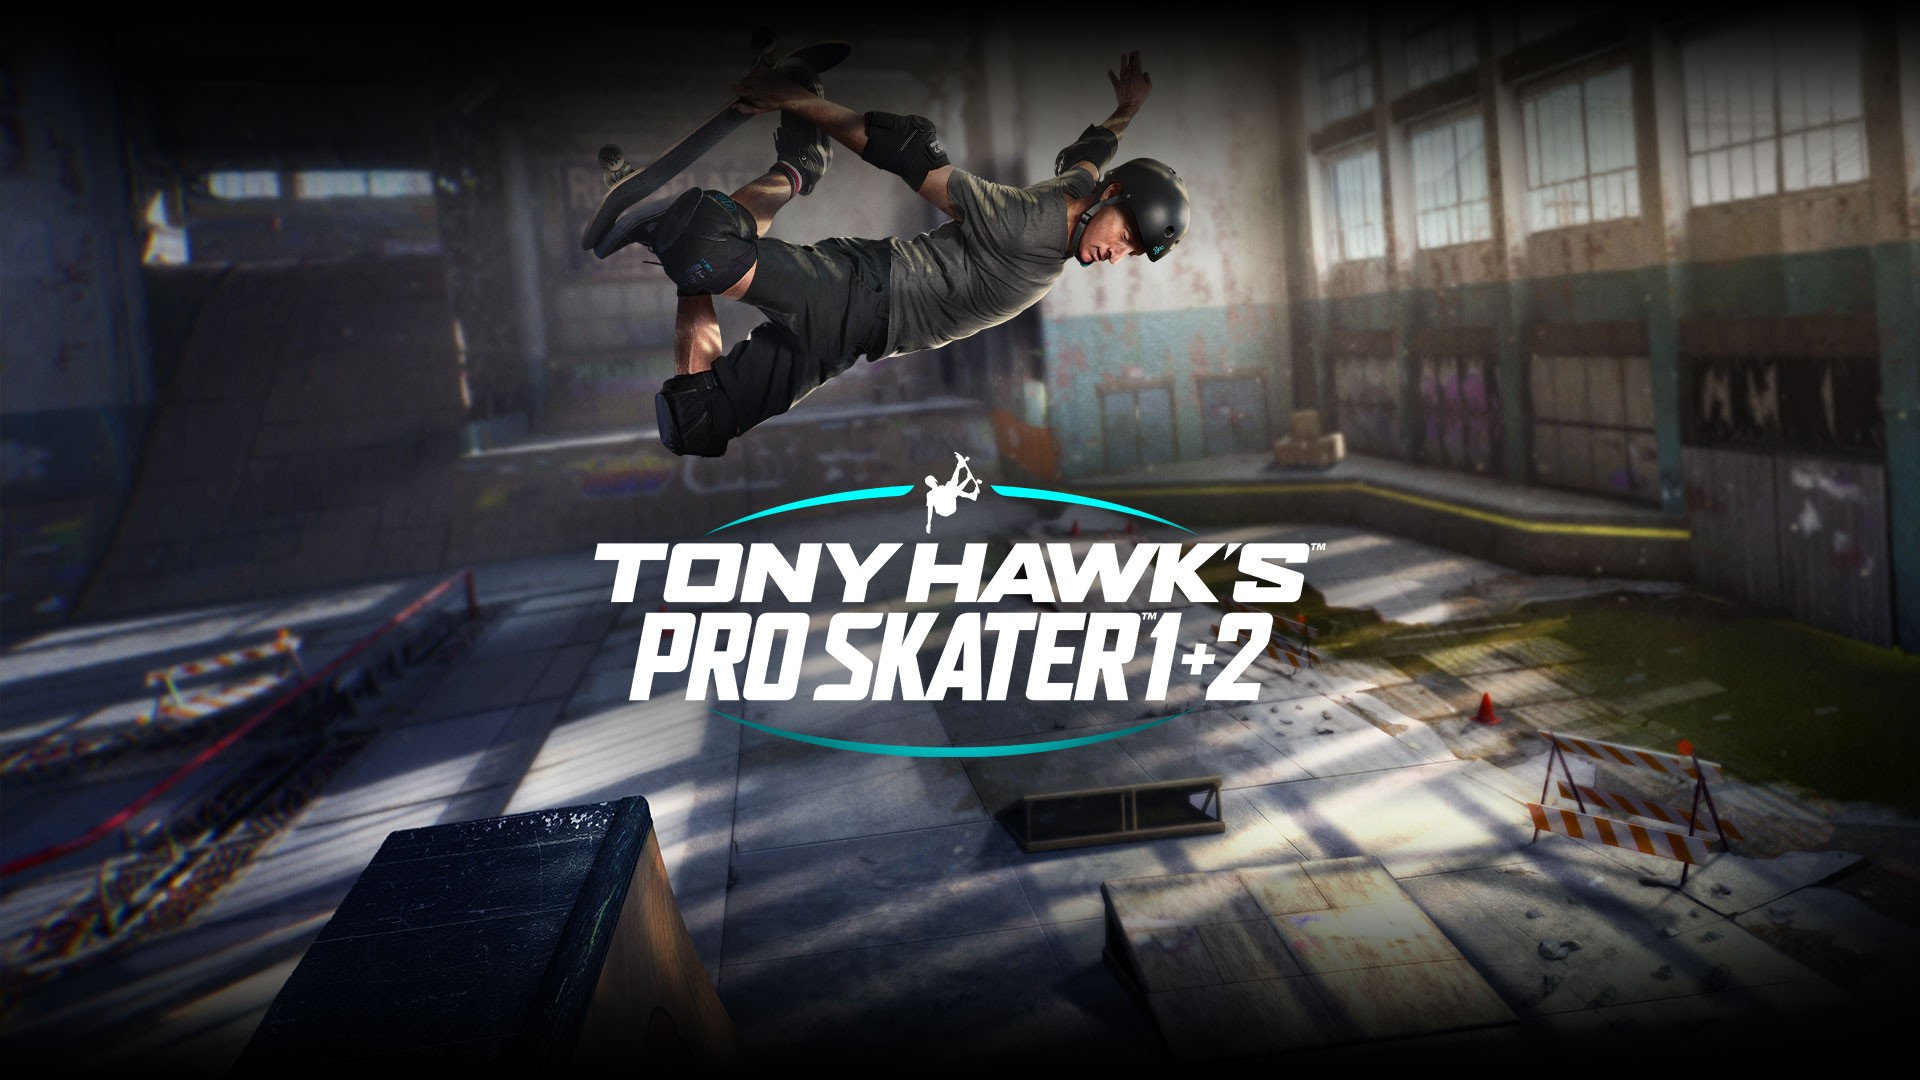 Tony Hawks Pro Skater 1 2 Remastered From Ramp To Rail On 1920x1080